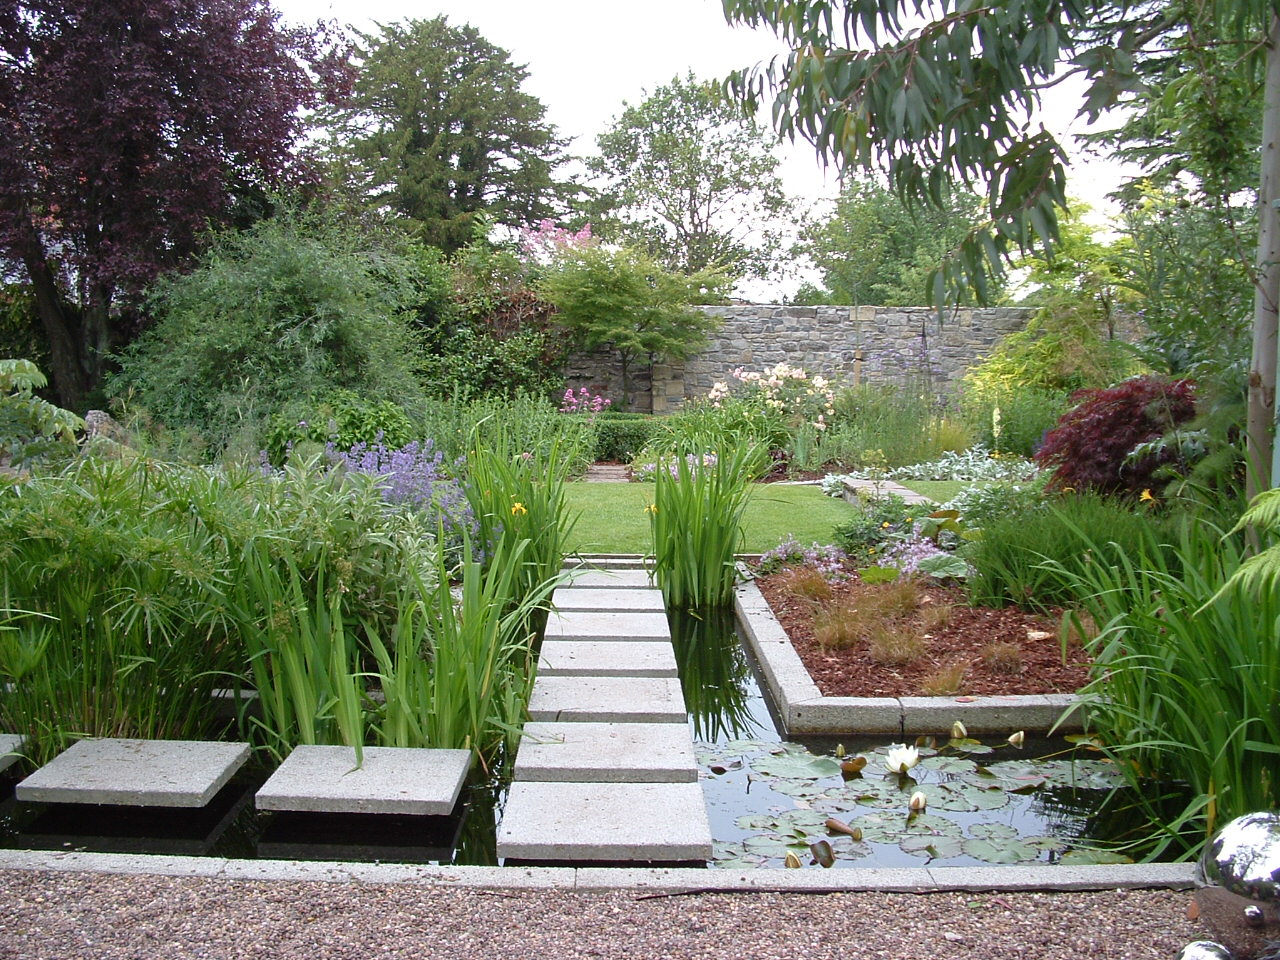 Square stepping stones over a formal pond create a link to another garden room.